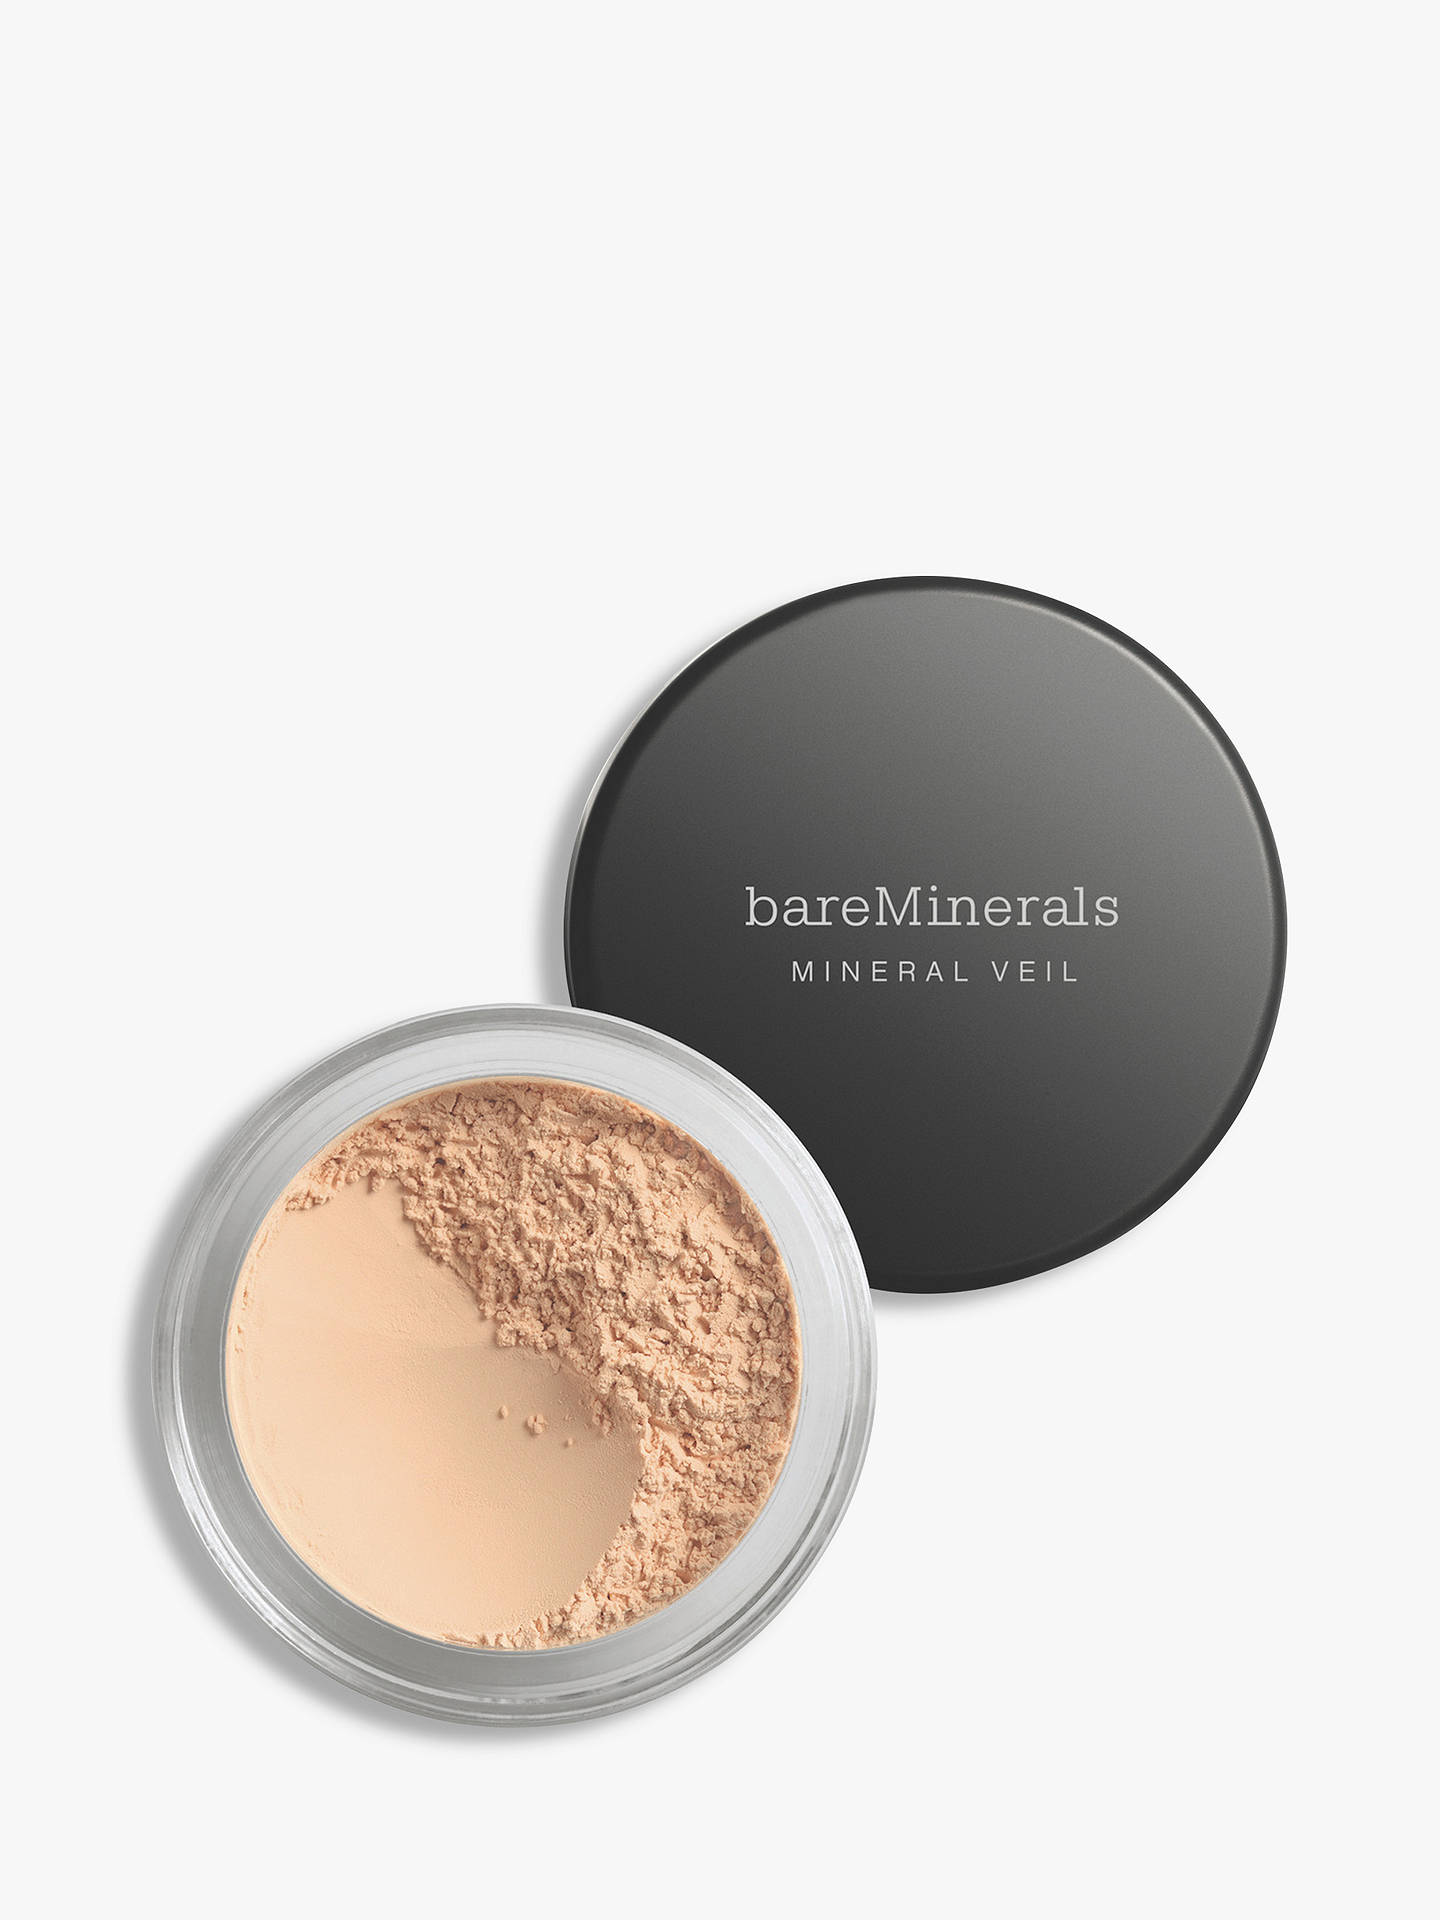 Buy bareMinerals Mineral Veil, Illuminating Online at johnlewis.com